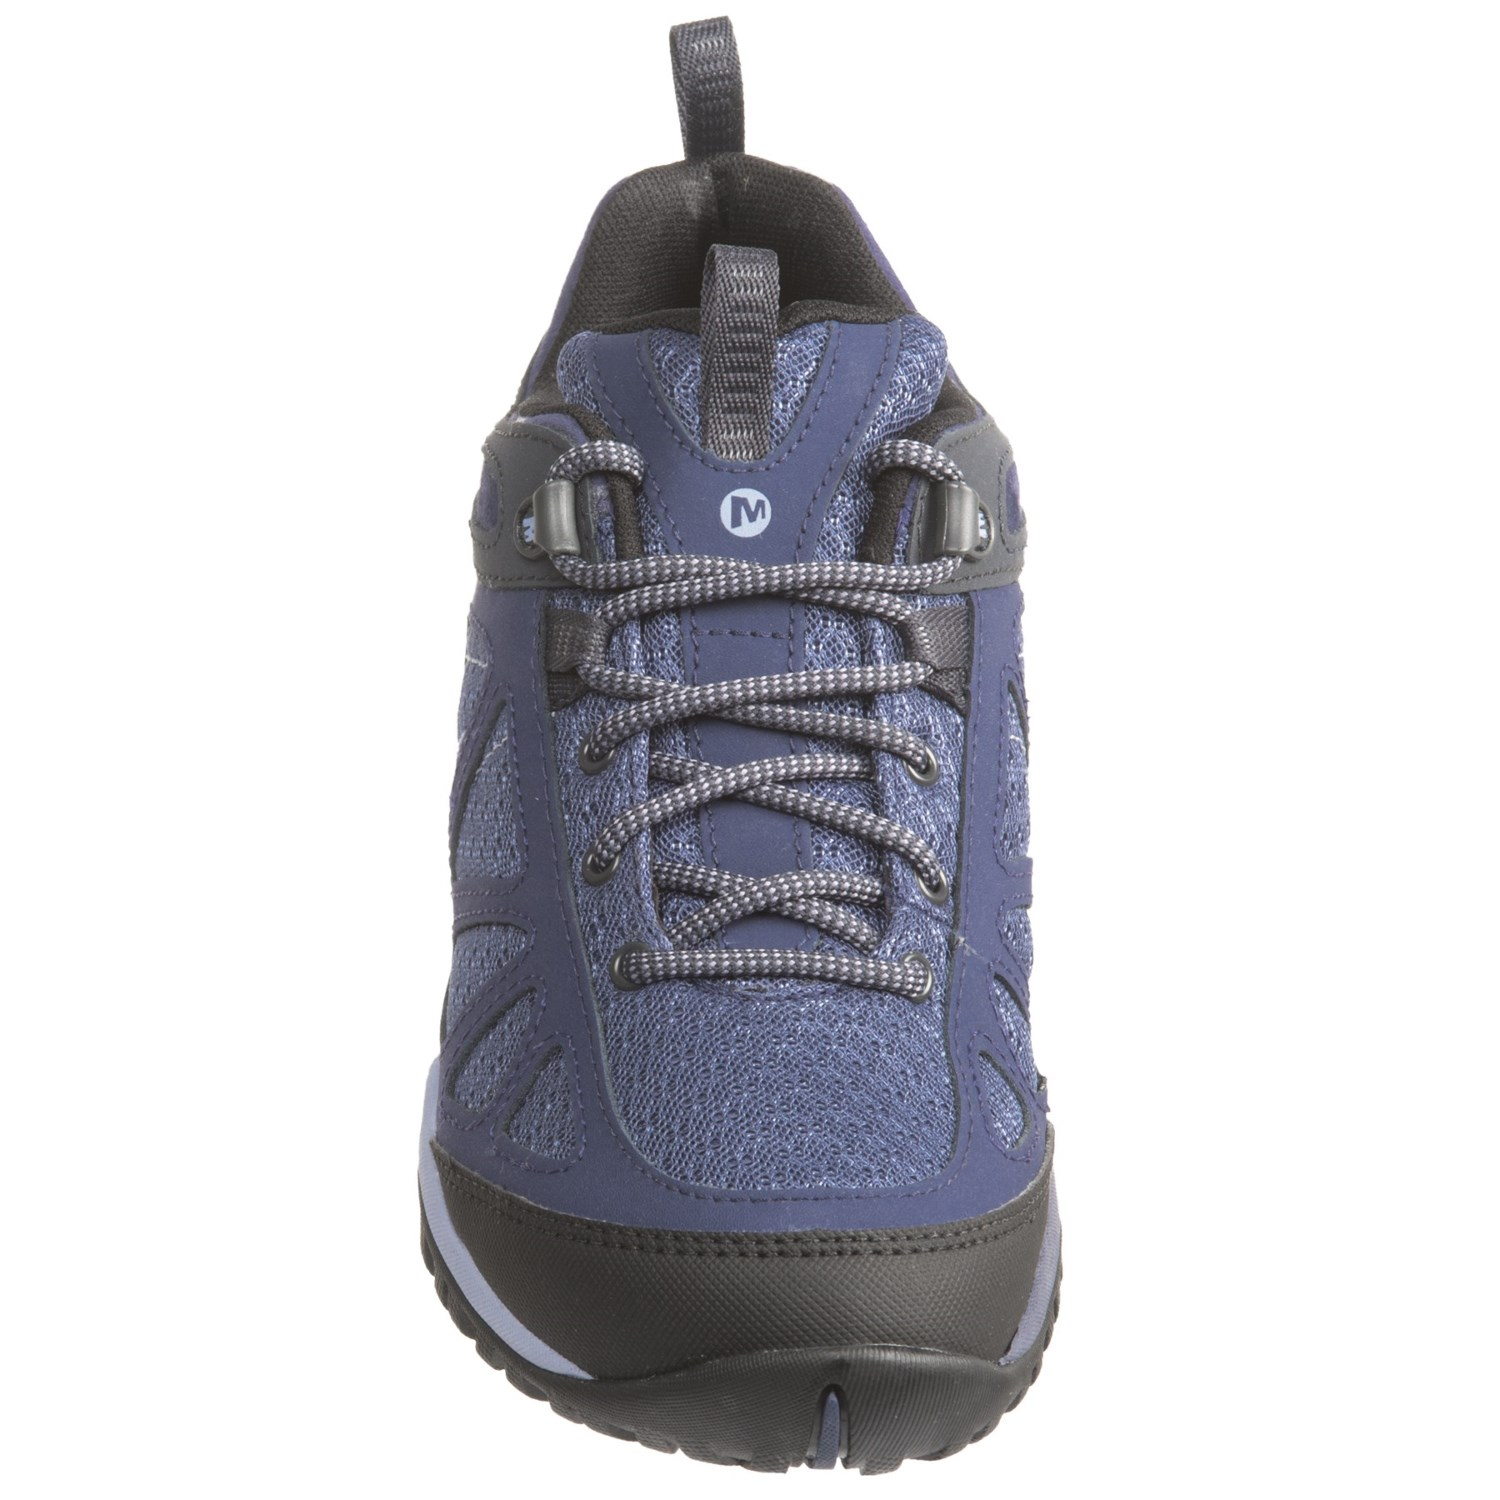 634ab63e93 Merrell Siren Sport Q2 Hiking Shoes (For Women) - Save 40%